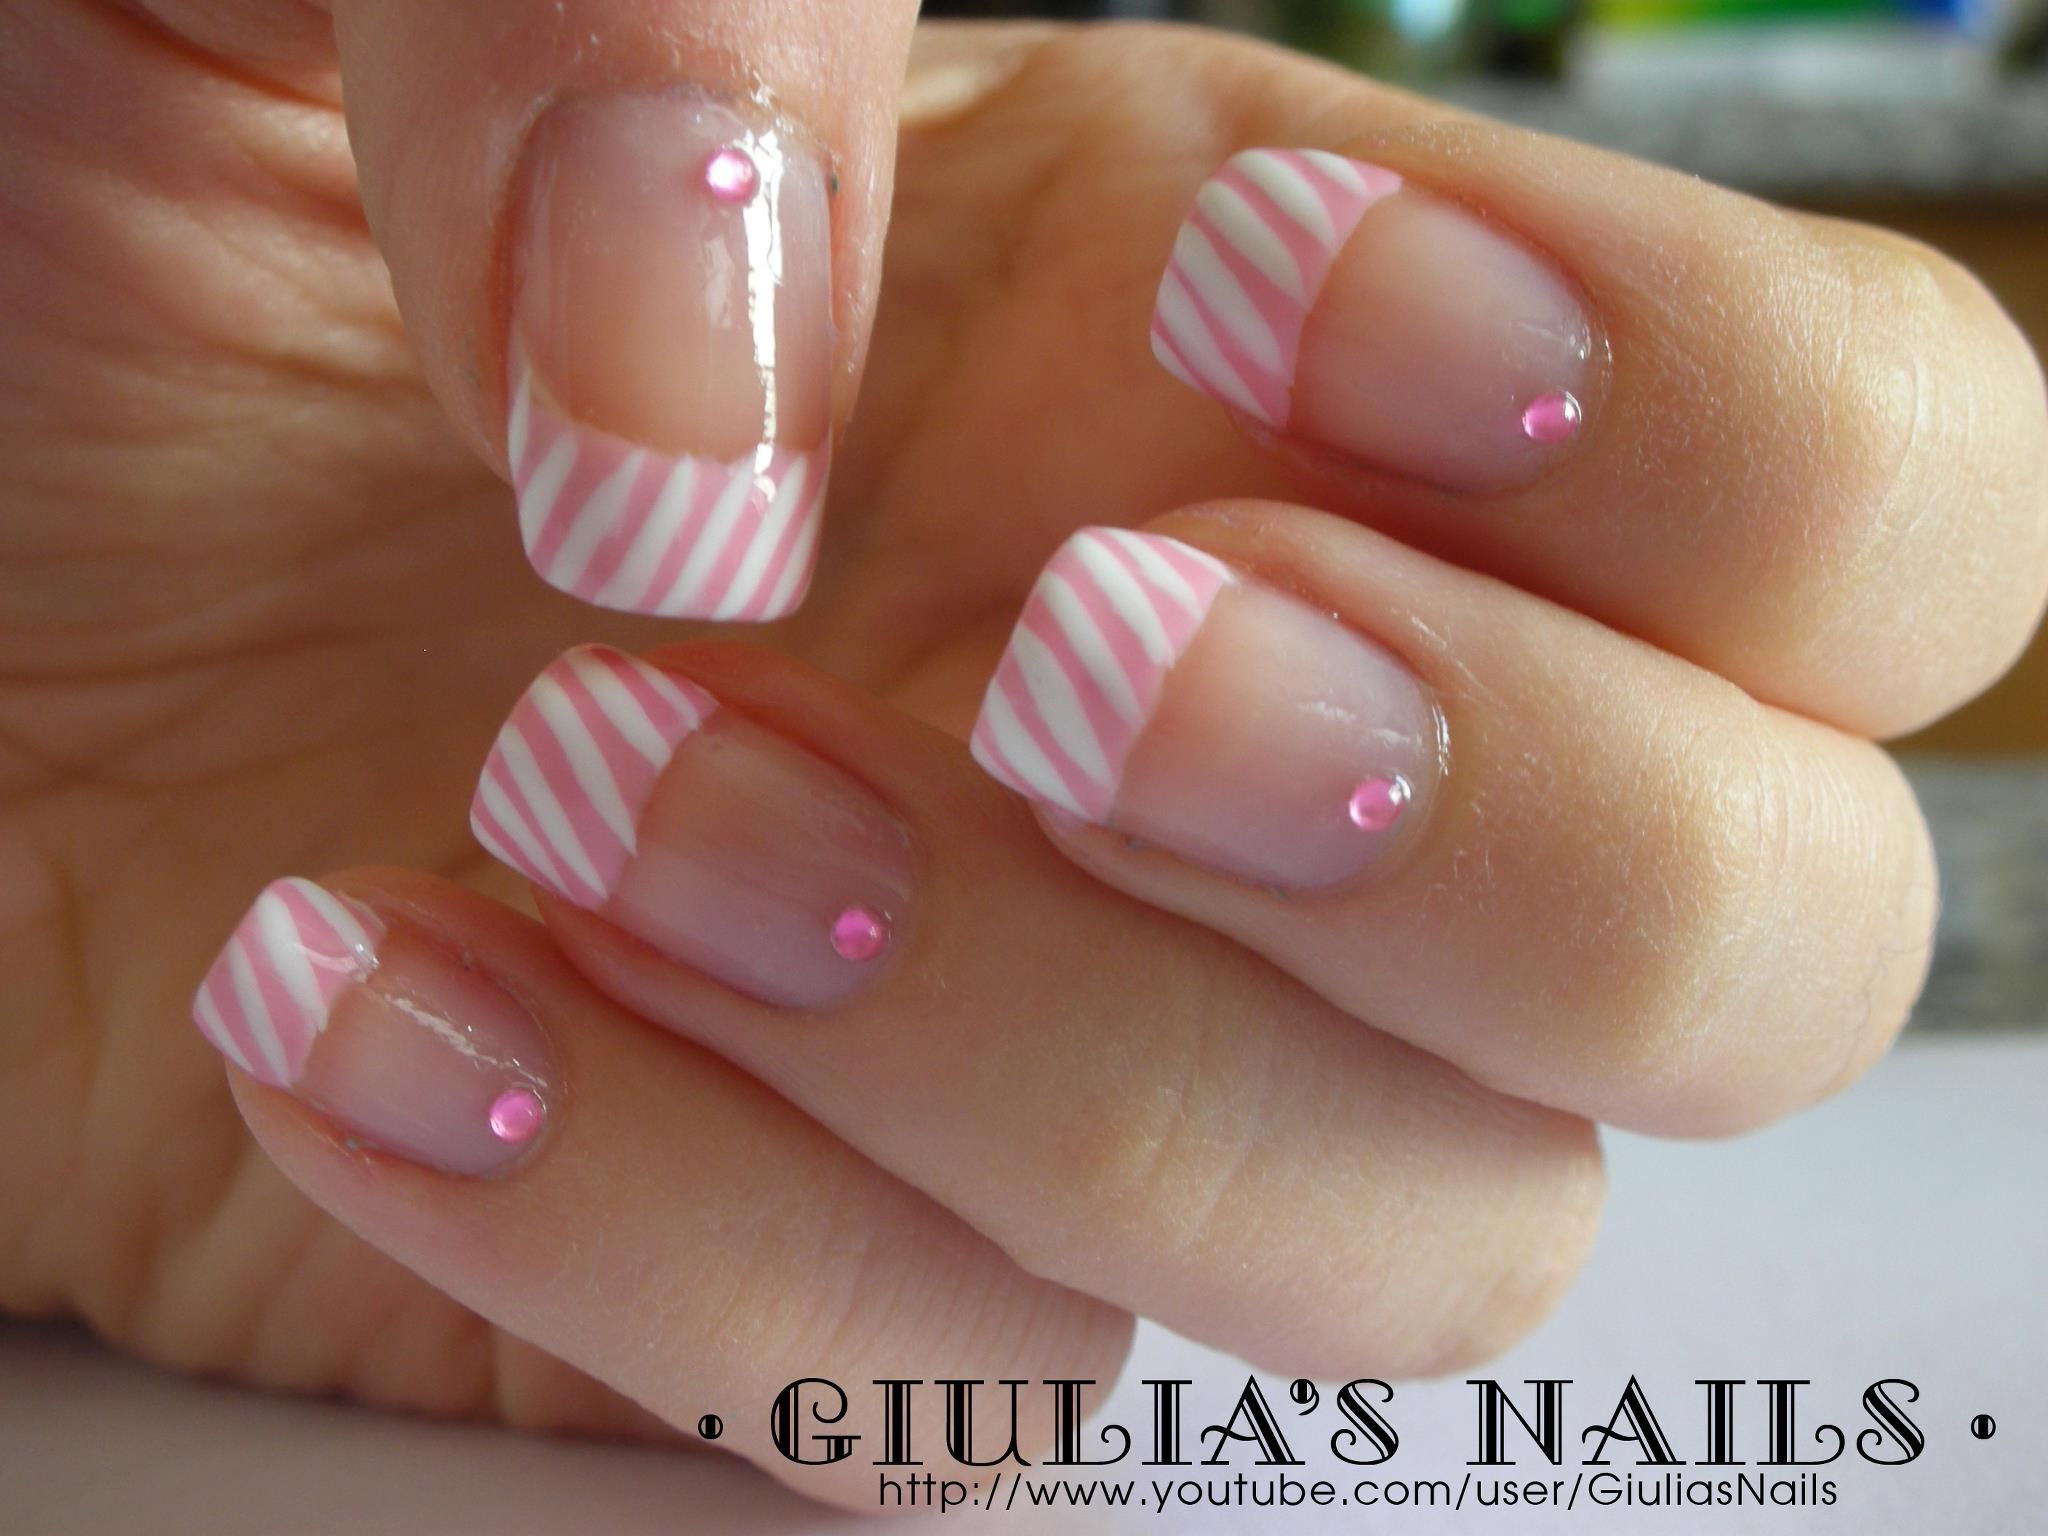 Cute french manicure with diagonal stripes in pink and white ...